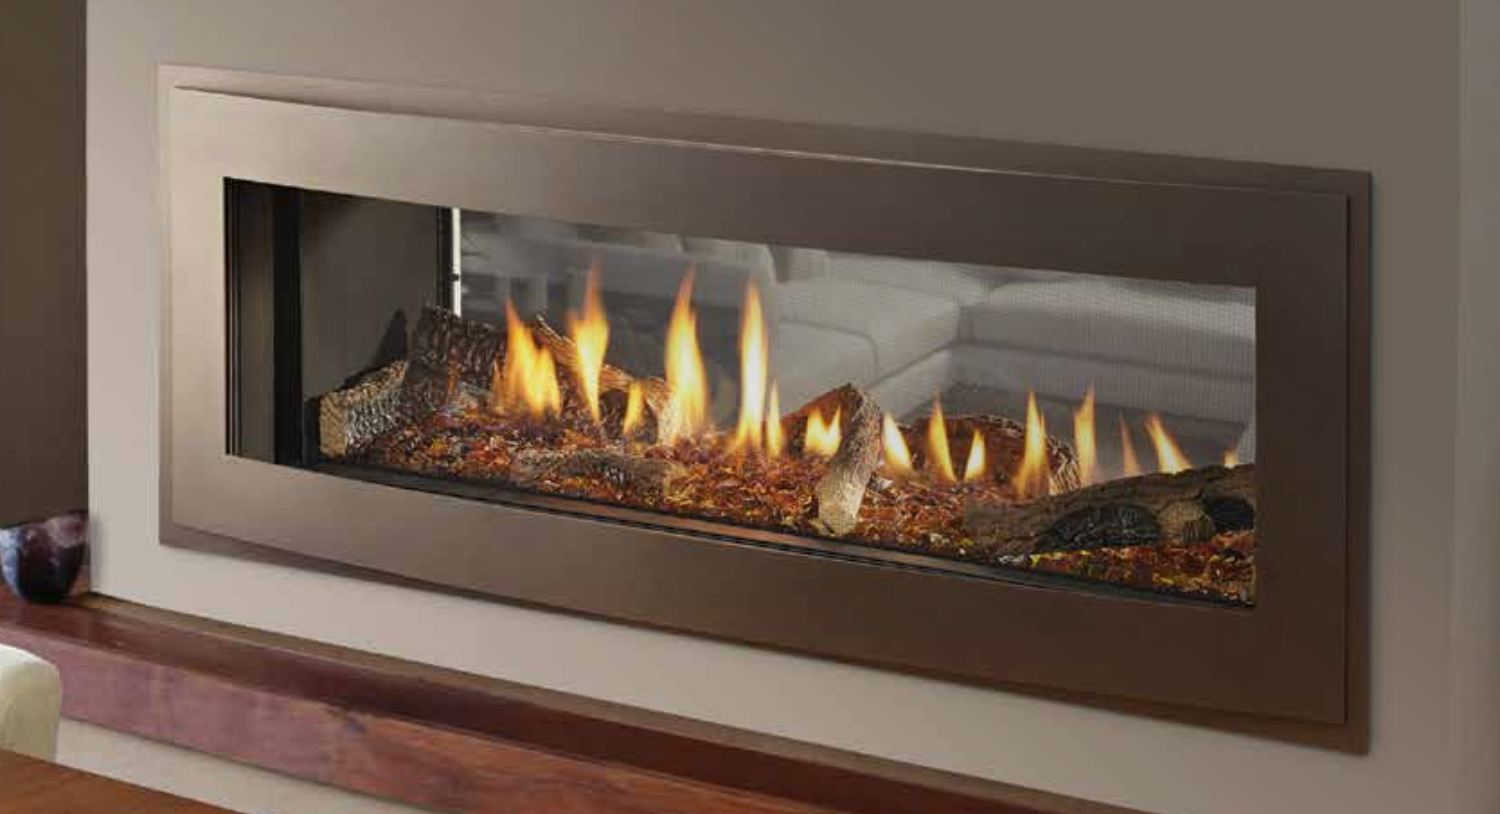 Crave Series Gas Fireplace is the best contemporary fireplace for you. Modern fireplaces at our fireplace store in San Jose